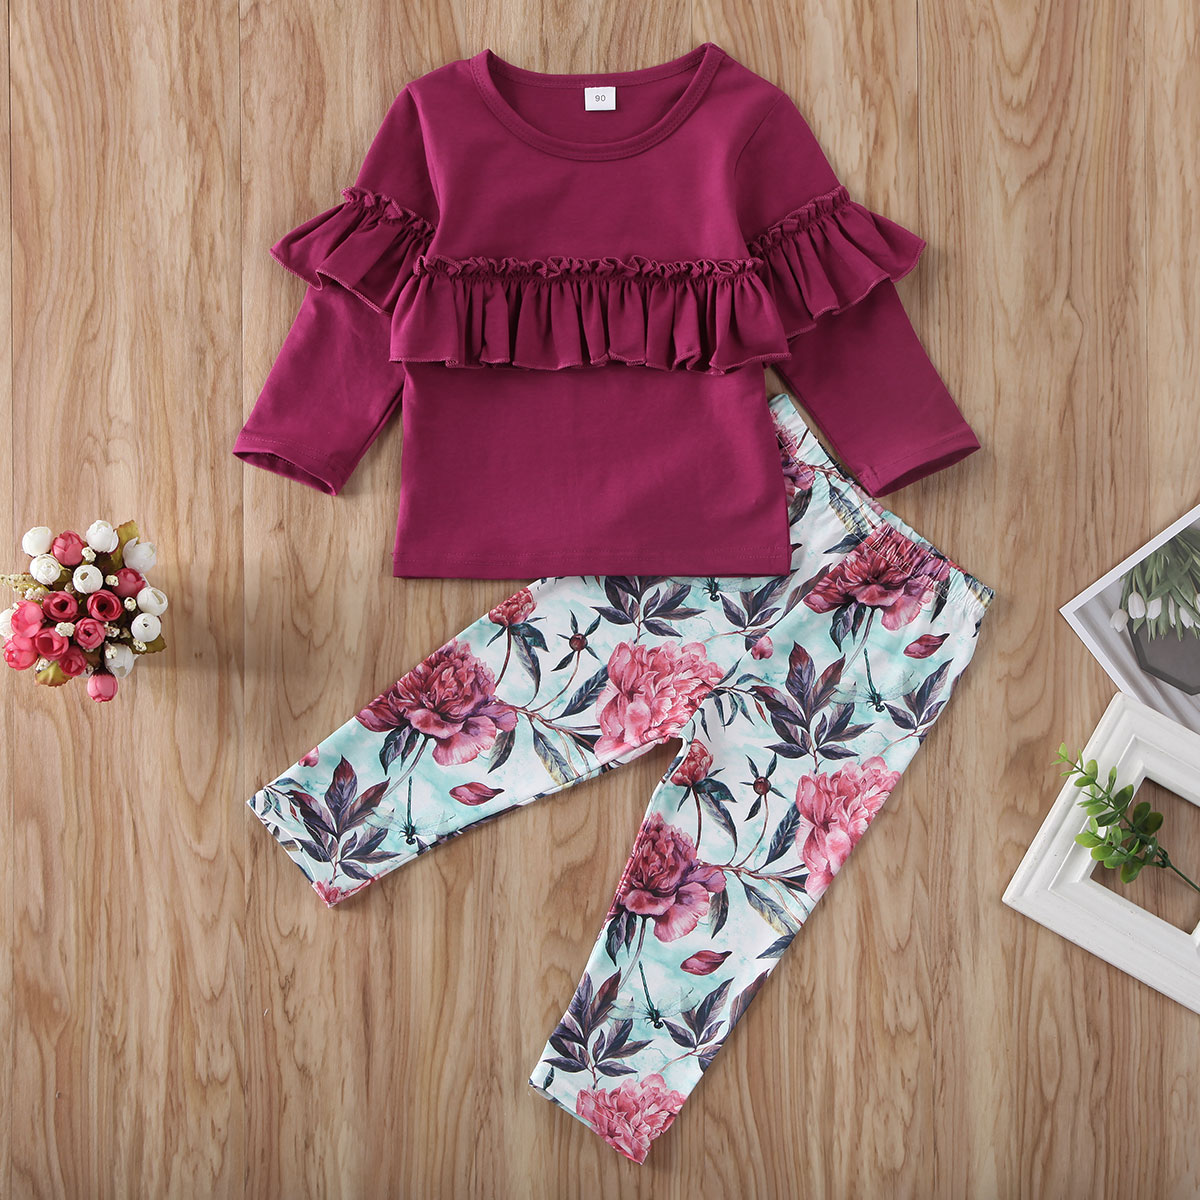 Pudcoco Toddler Baby Girl Clothes Solid Color Long Sleeve Ruffle Tops Flower Print Long Pants 2Pcs Outfits Cotton Clothes Set